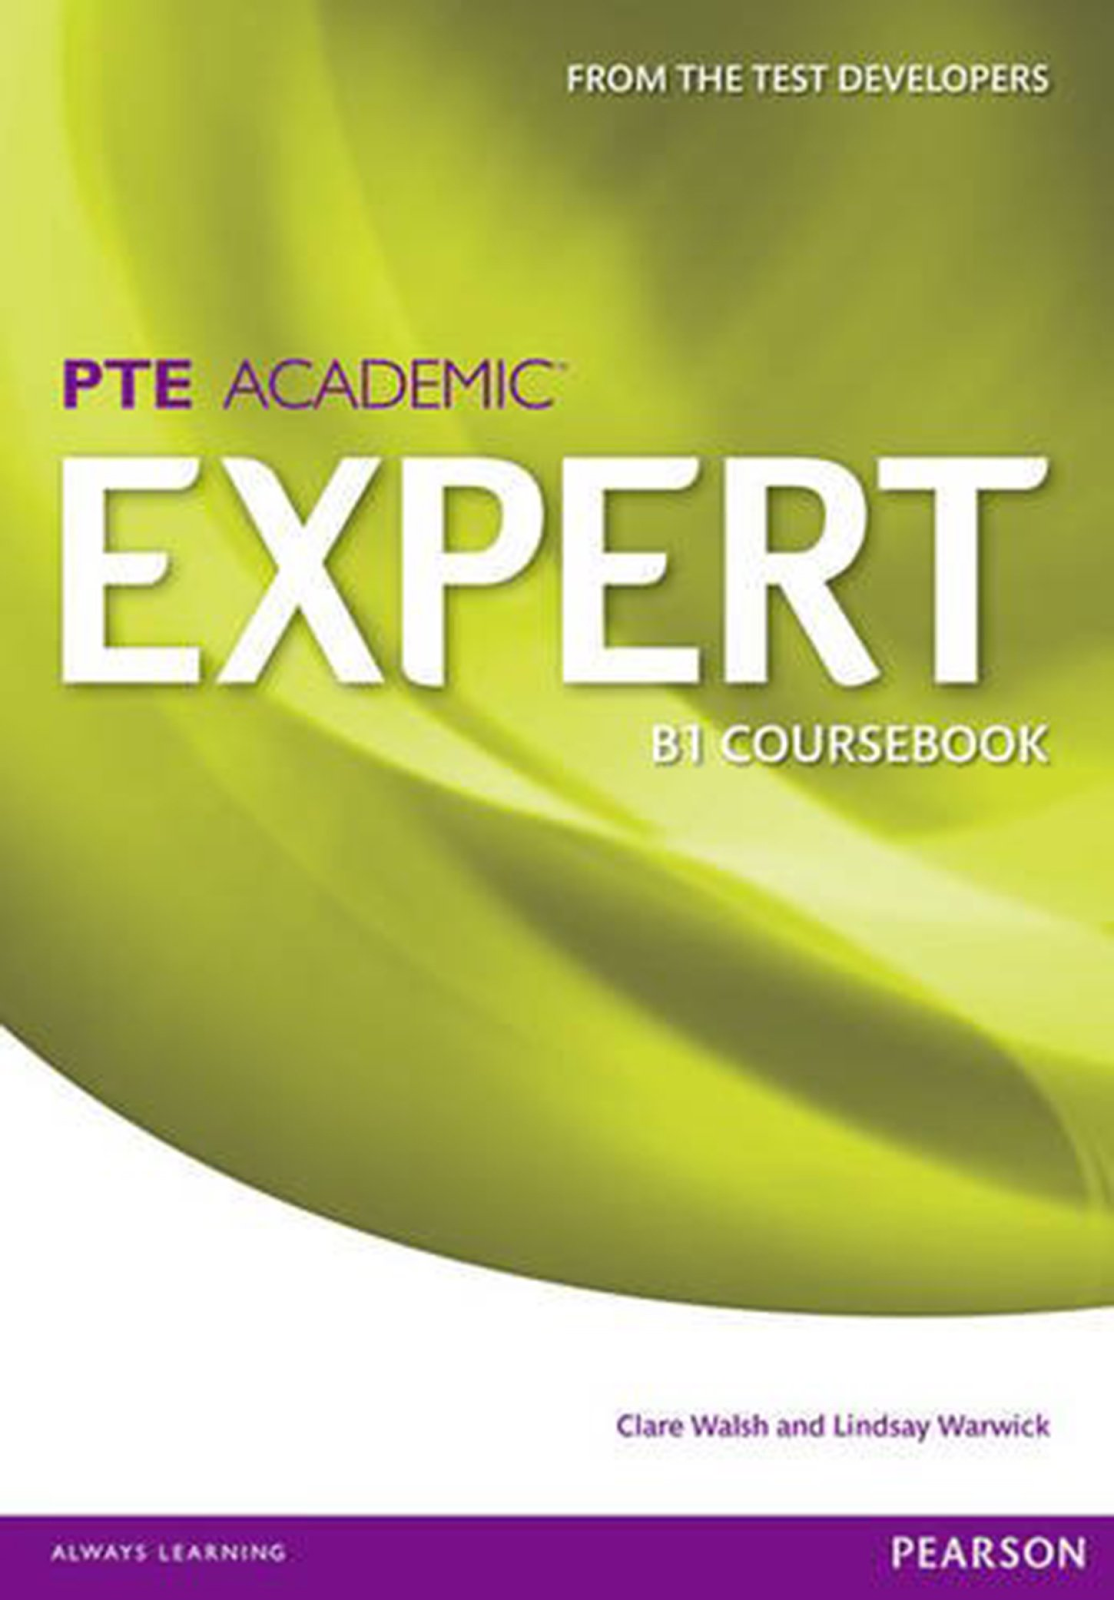 PTE exam book - pte academic expert